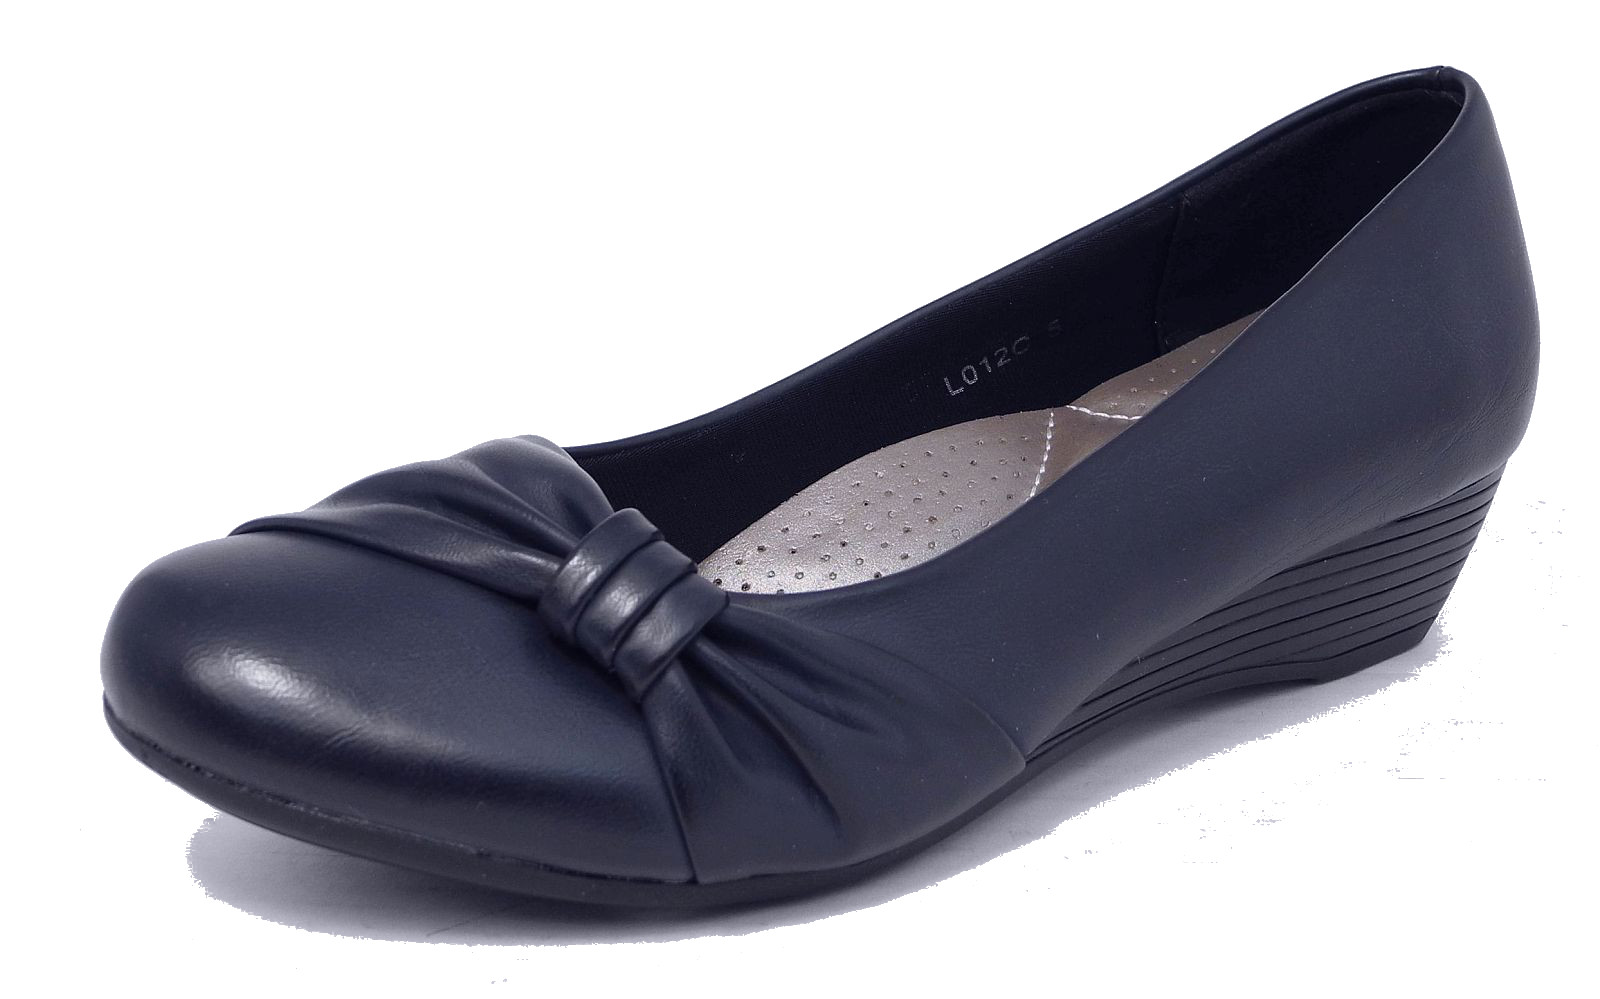 womens leather lined comfortable low wedge heel court shoes black navy ebay